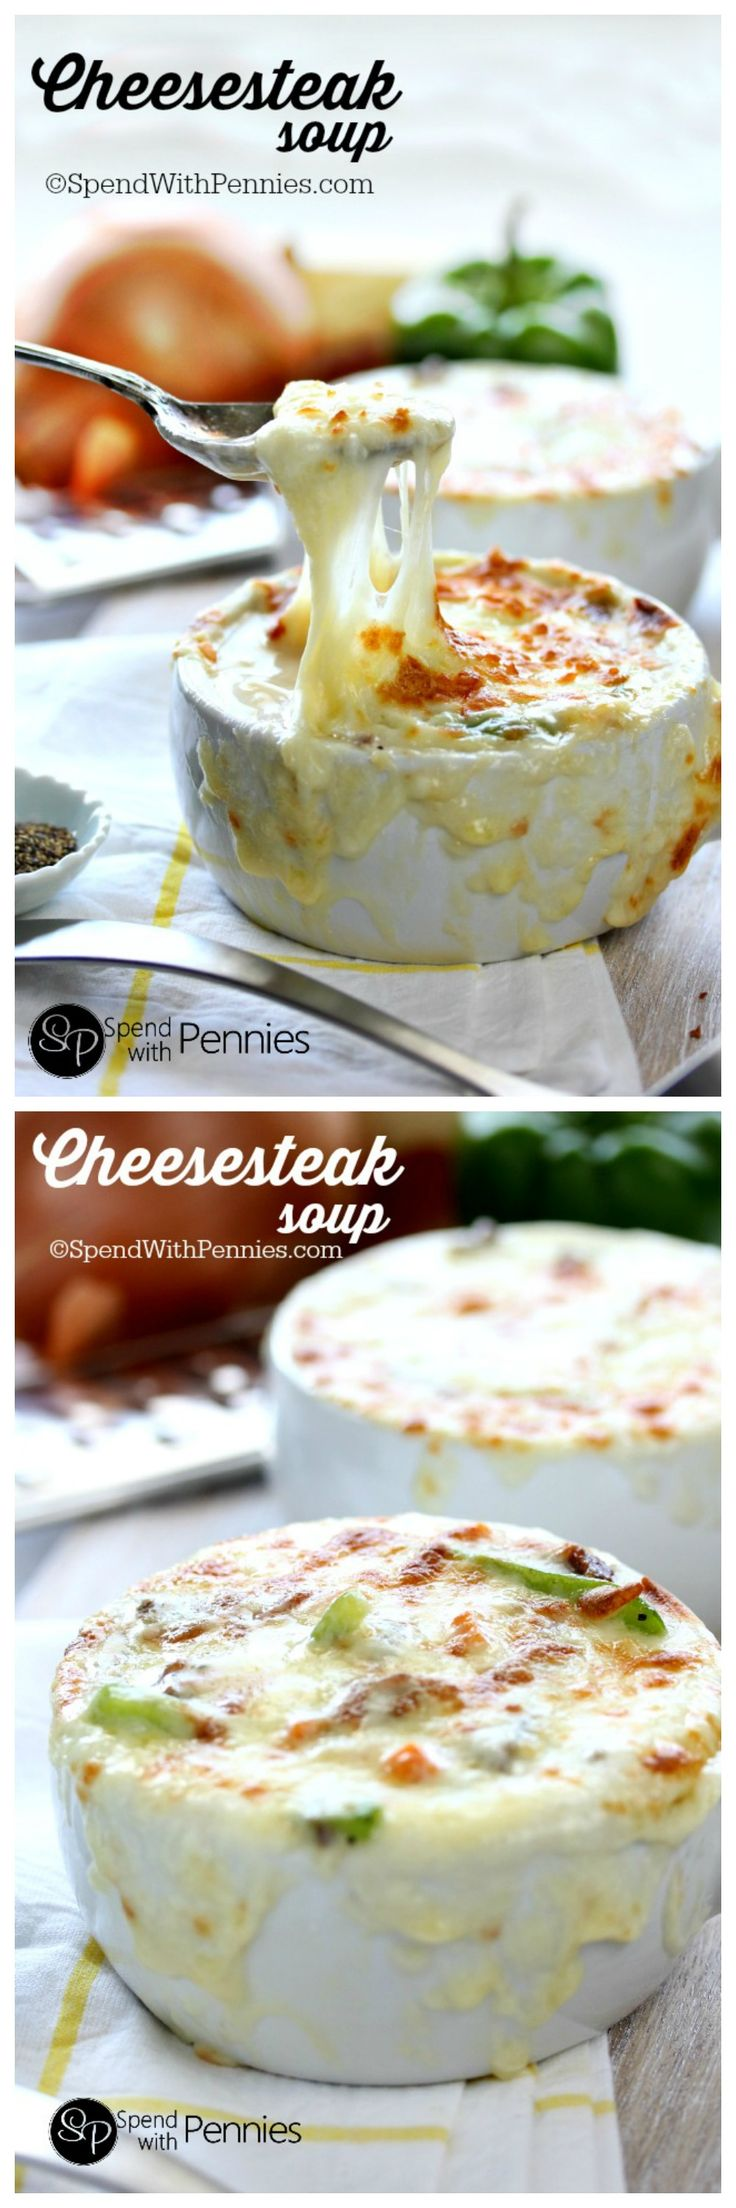 cheap sneakers online usa Baked Cheesesteak Soup  Loaded with beef  peppers and cheese this creamy cheesy soup recipe is a great twist on an old favorite  creamy  cheesy  and so satisfying